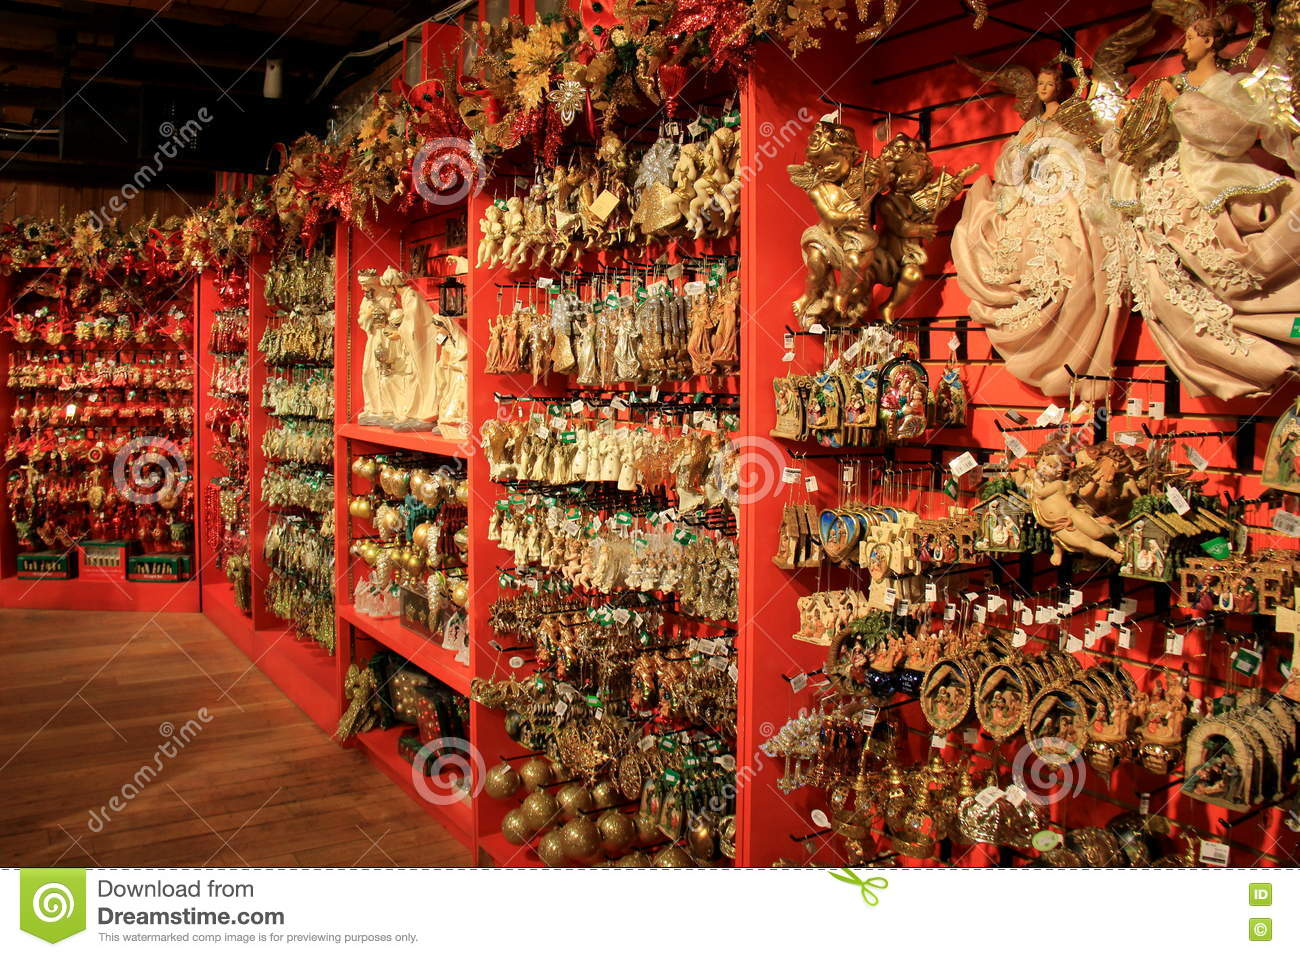 Vast array of holiday ornaments on display in the for The christmas store